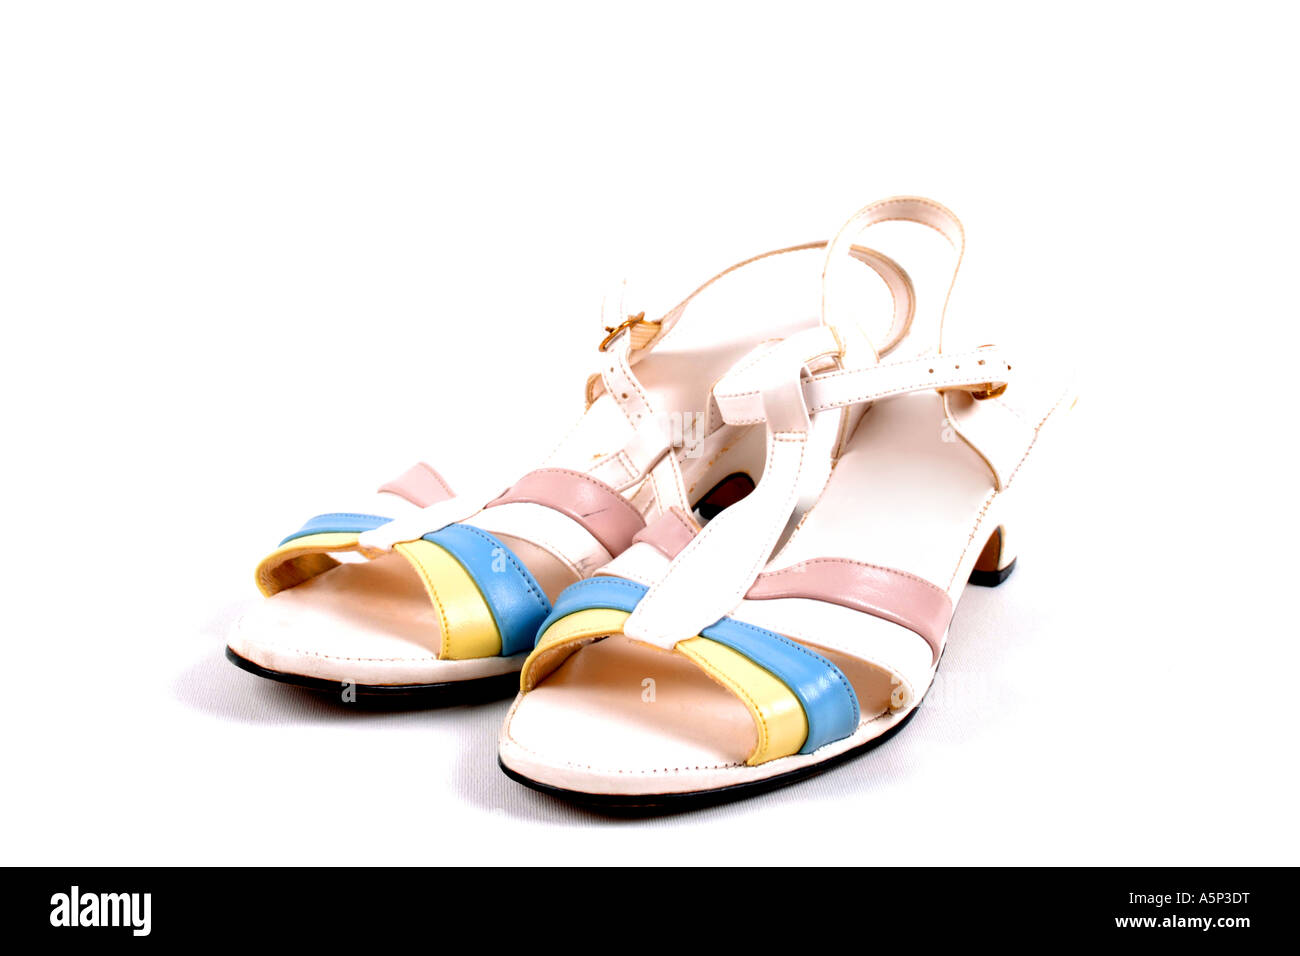 Womens multi colored Sandals. - Stock Image